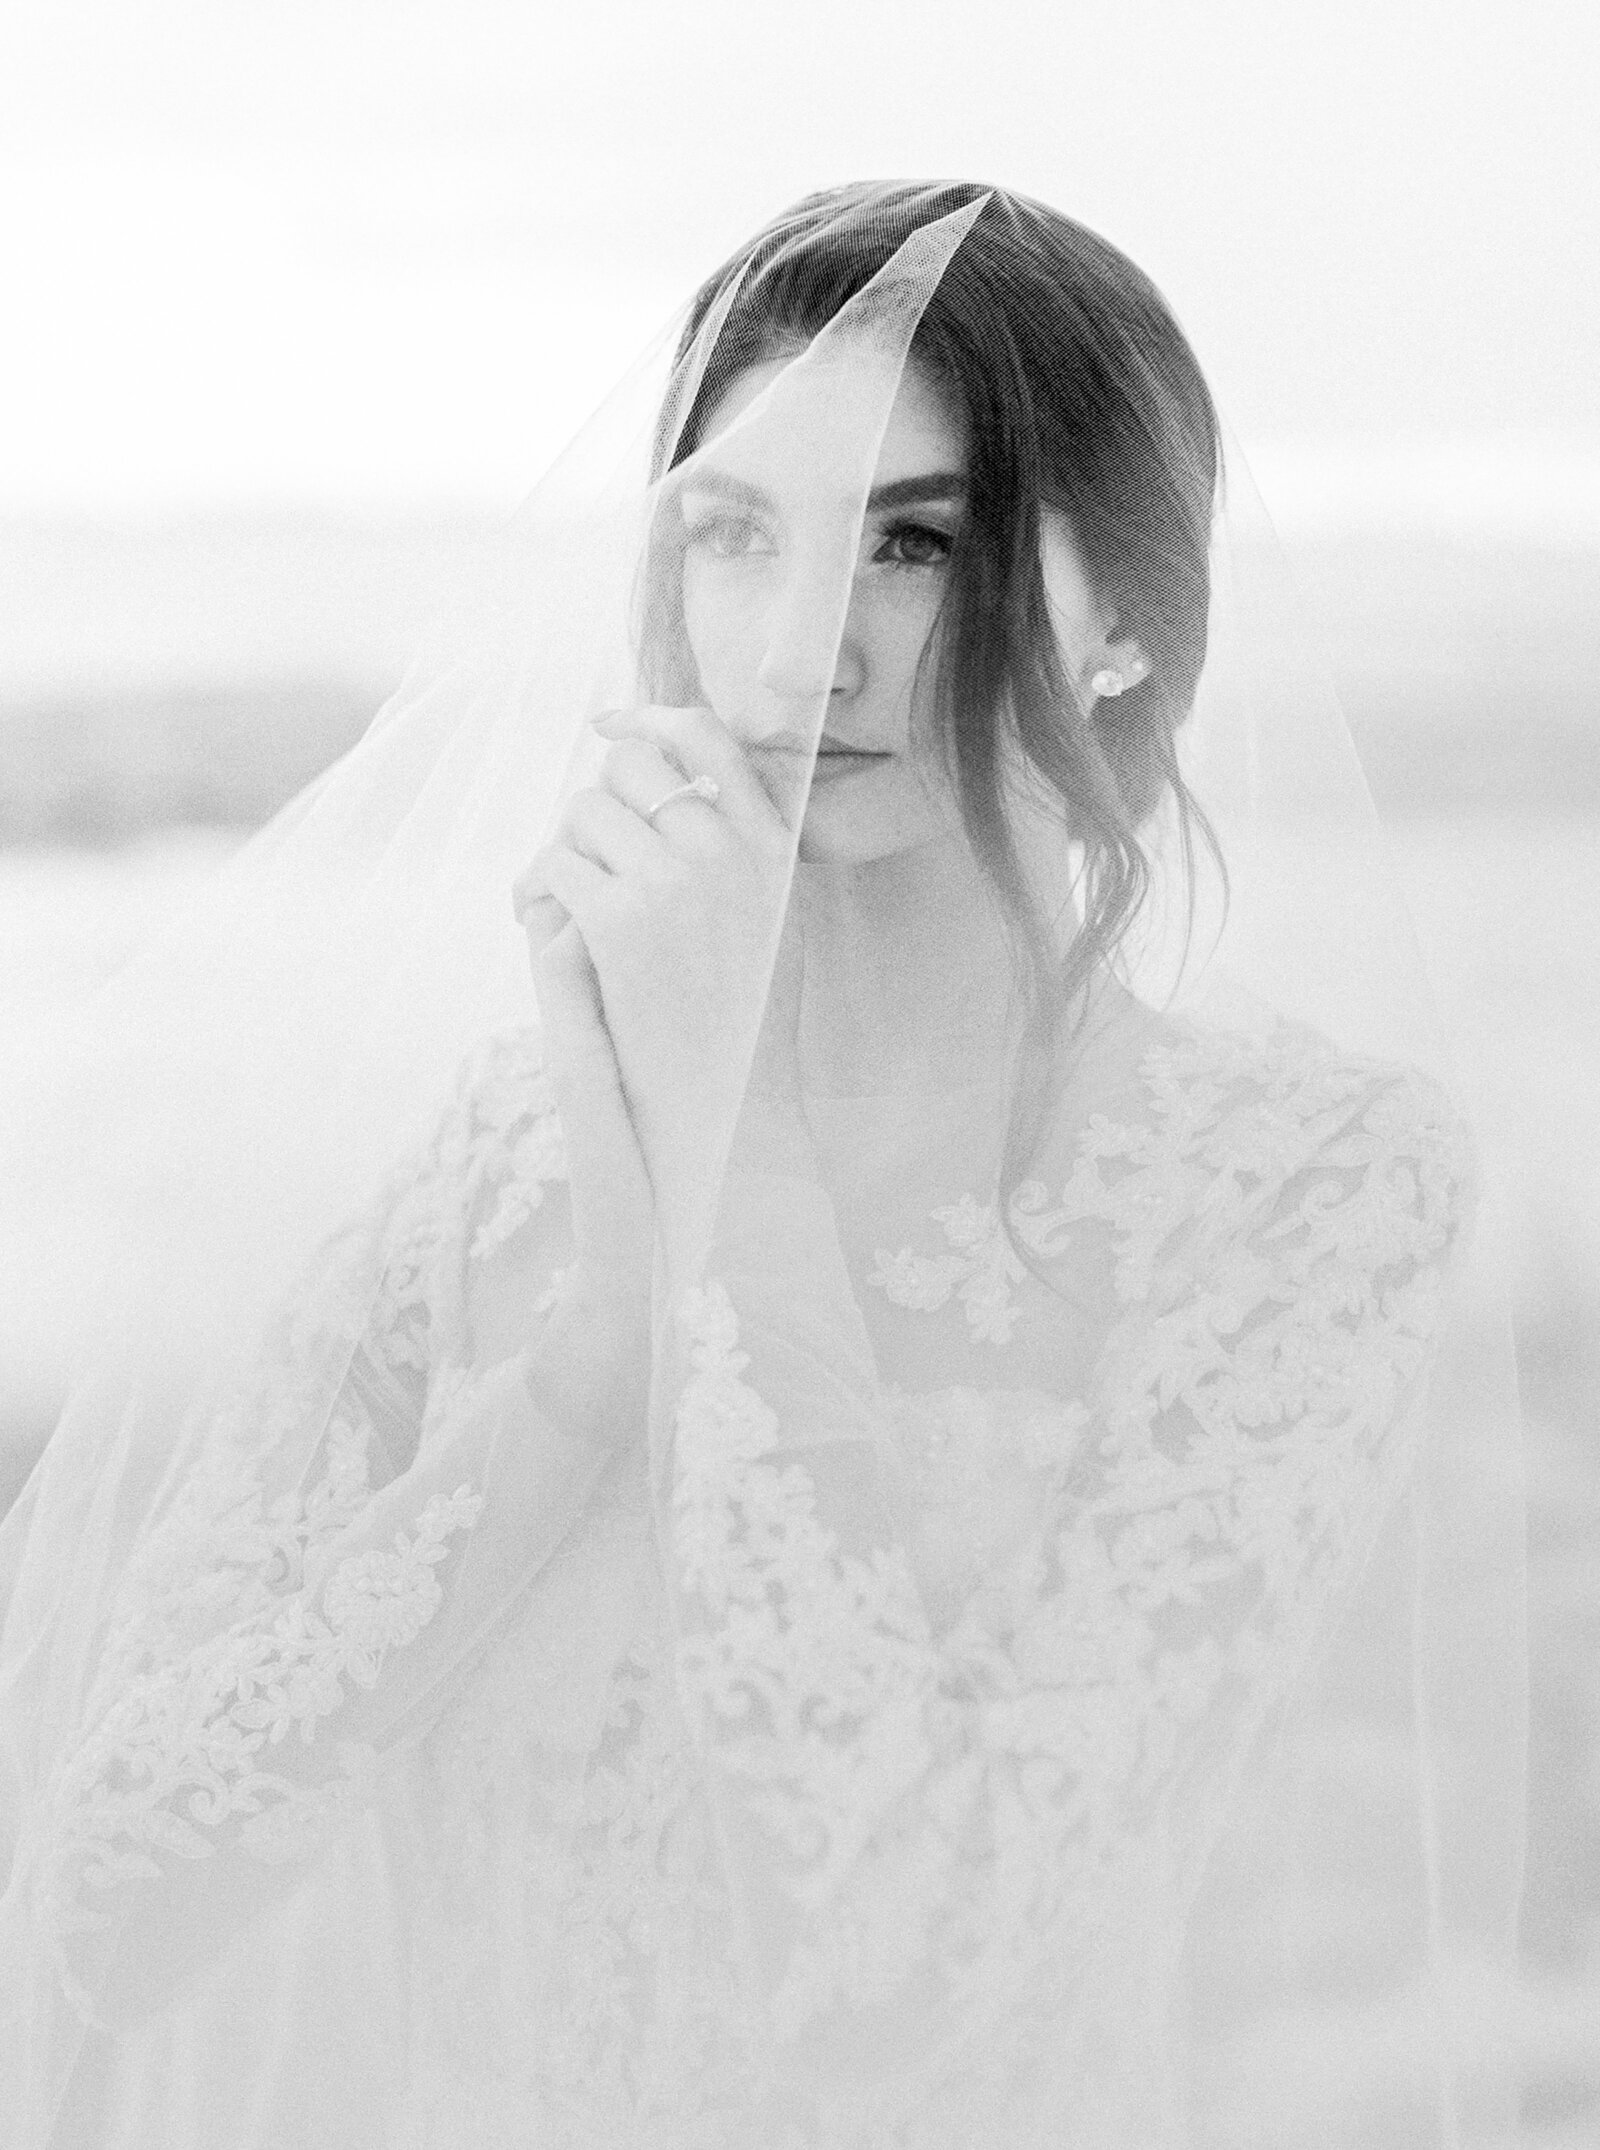 050-larissa-cleveland-editorial-fashion-wedding_photographer-san-francisco-carmel-napa-california-LCphoto-winter-Montana-fostercreek-040